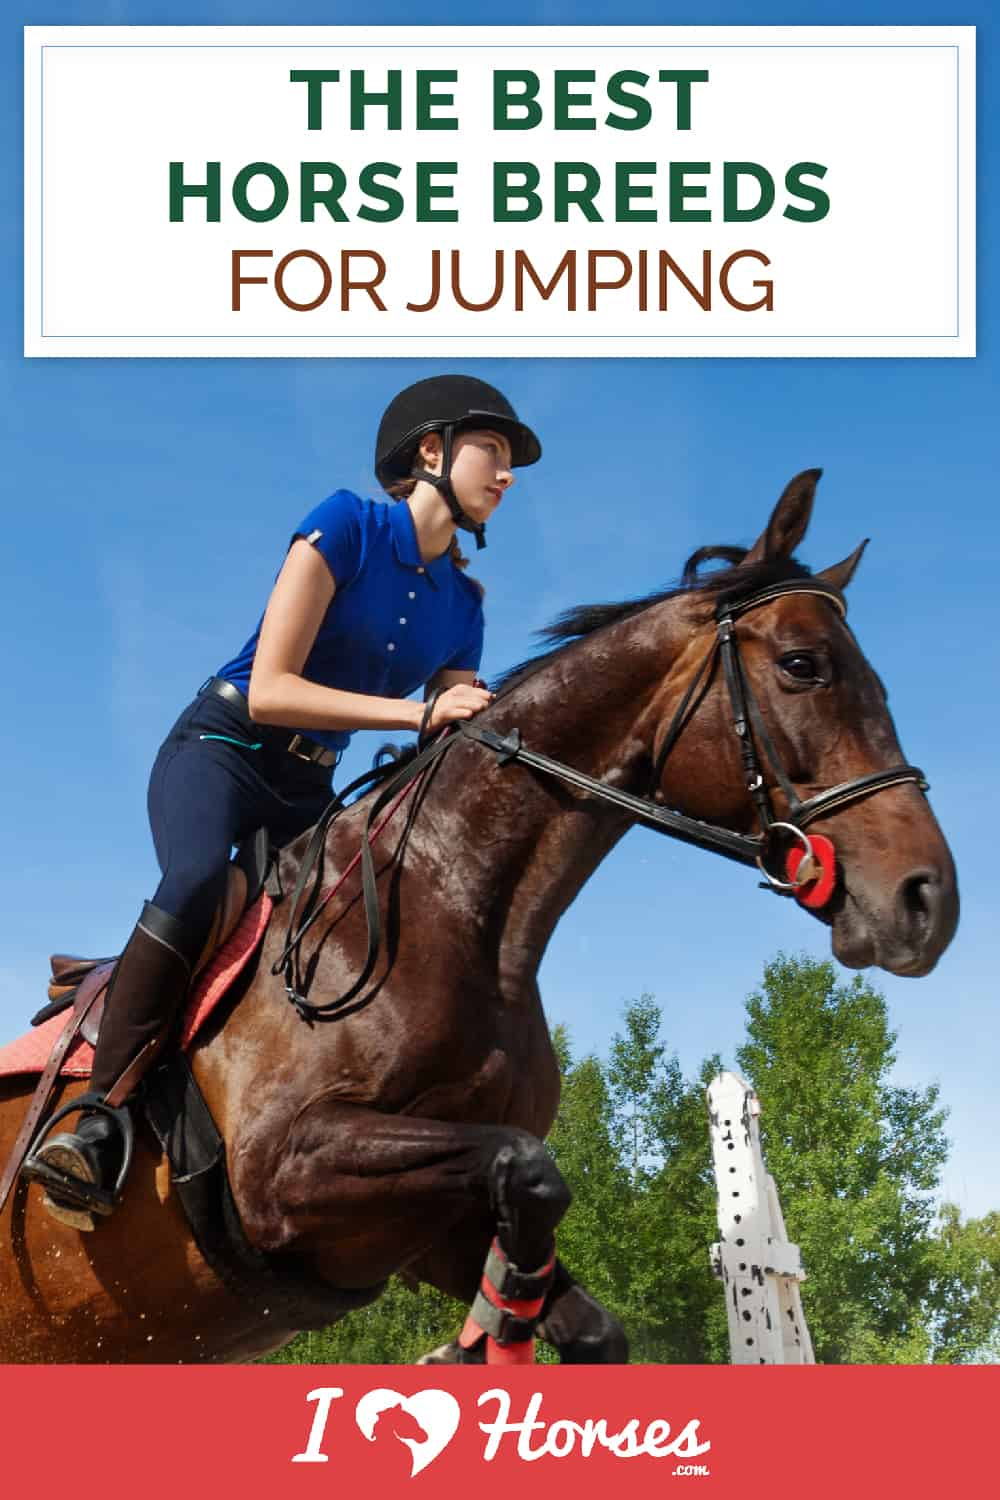 The Best Horse Breeds For Jumping